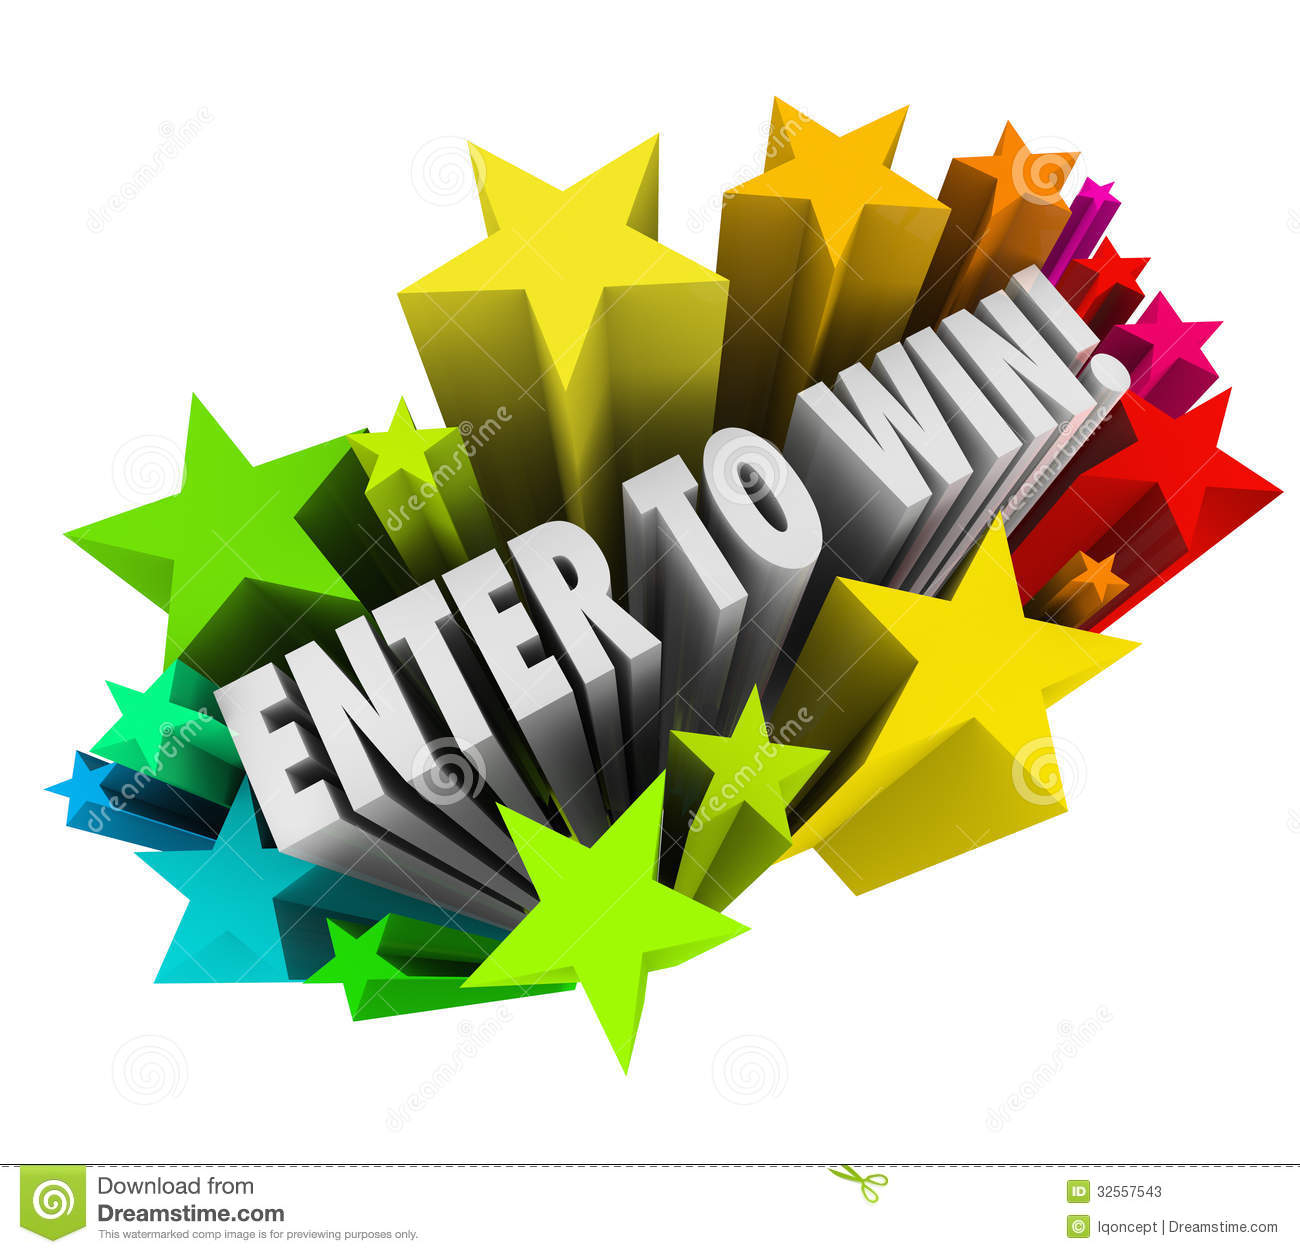 Enter To Win Stars Fireworks Contest Raffle Entry Jackpot Stock Photos ...